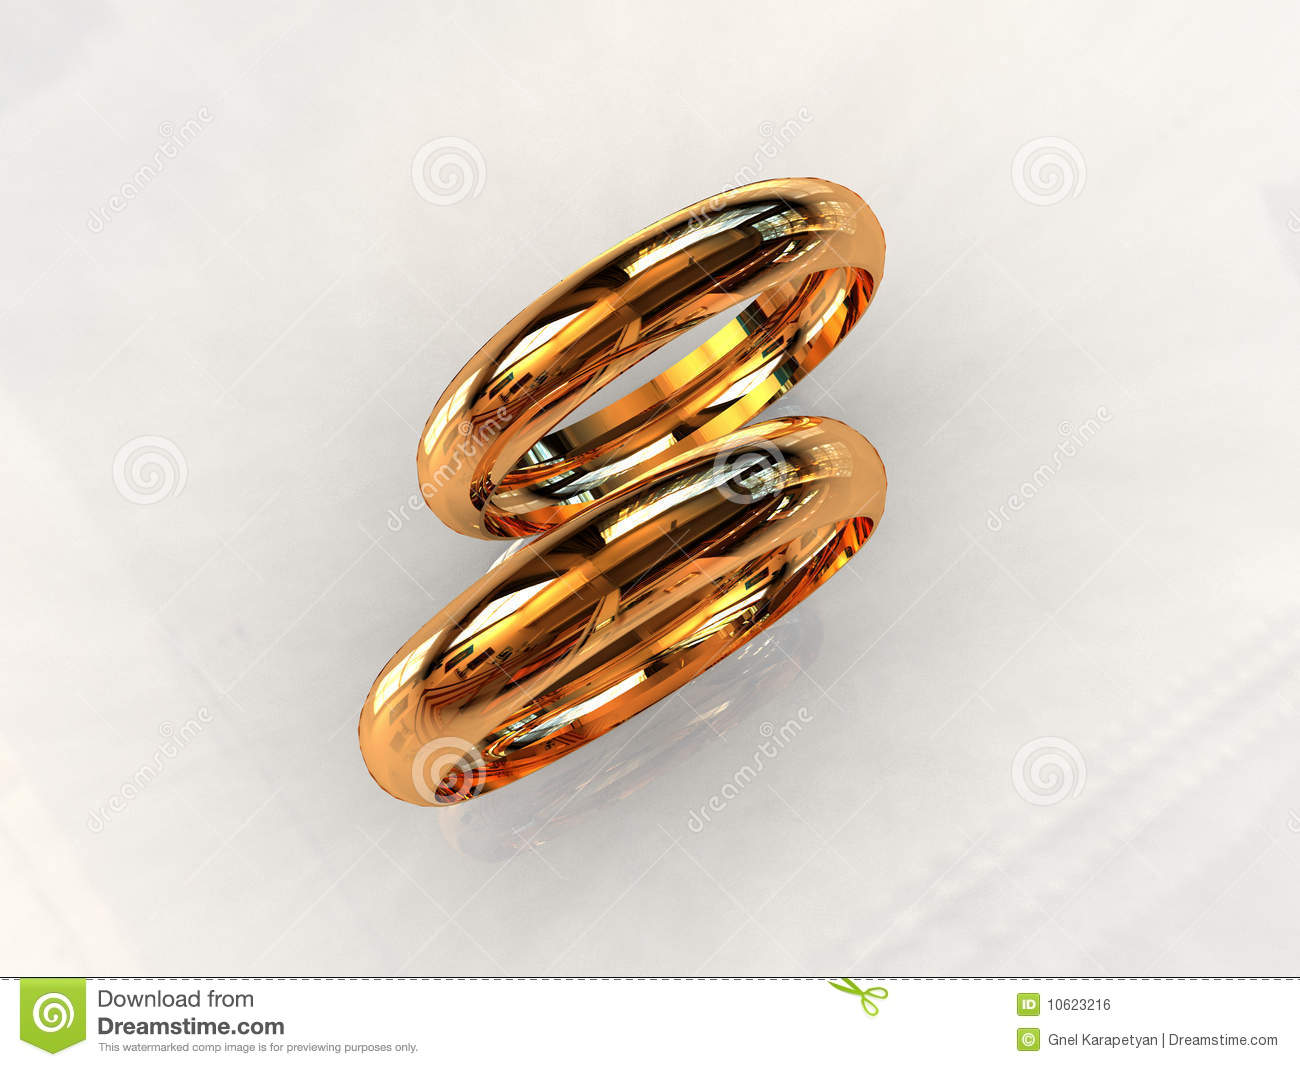 royalty free stock image classic 24ct gold wedding rings image classic wedding rings Classic 24ct gold wedding rings